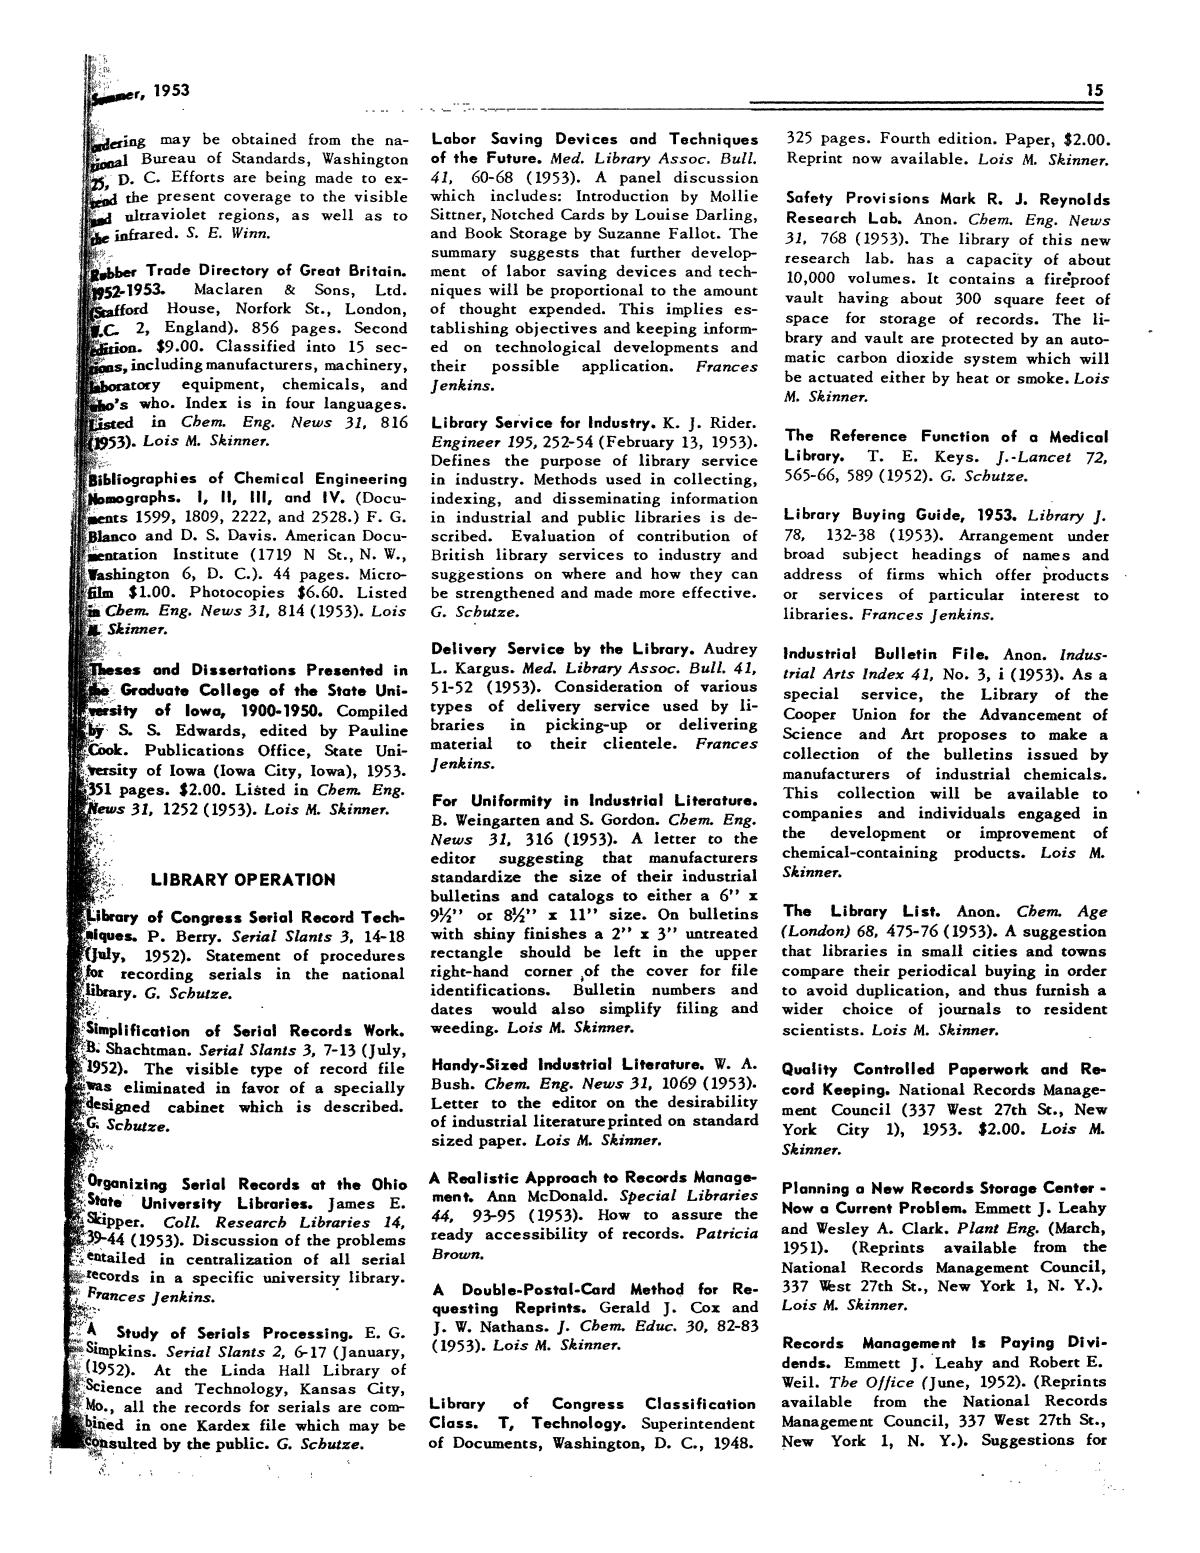 Chemical Literature, Volume 5, Number 2, Summer 1953 - Page